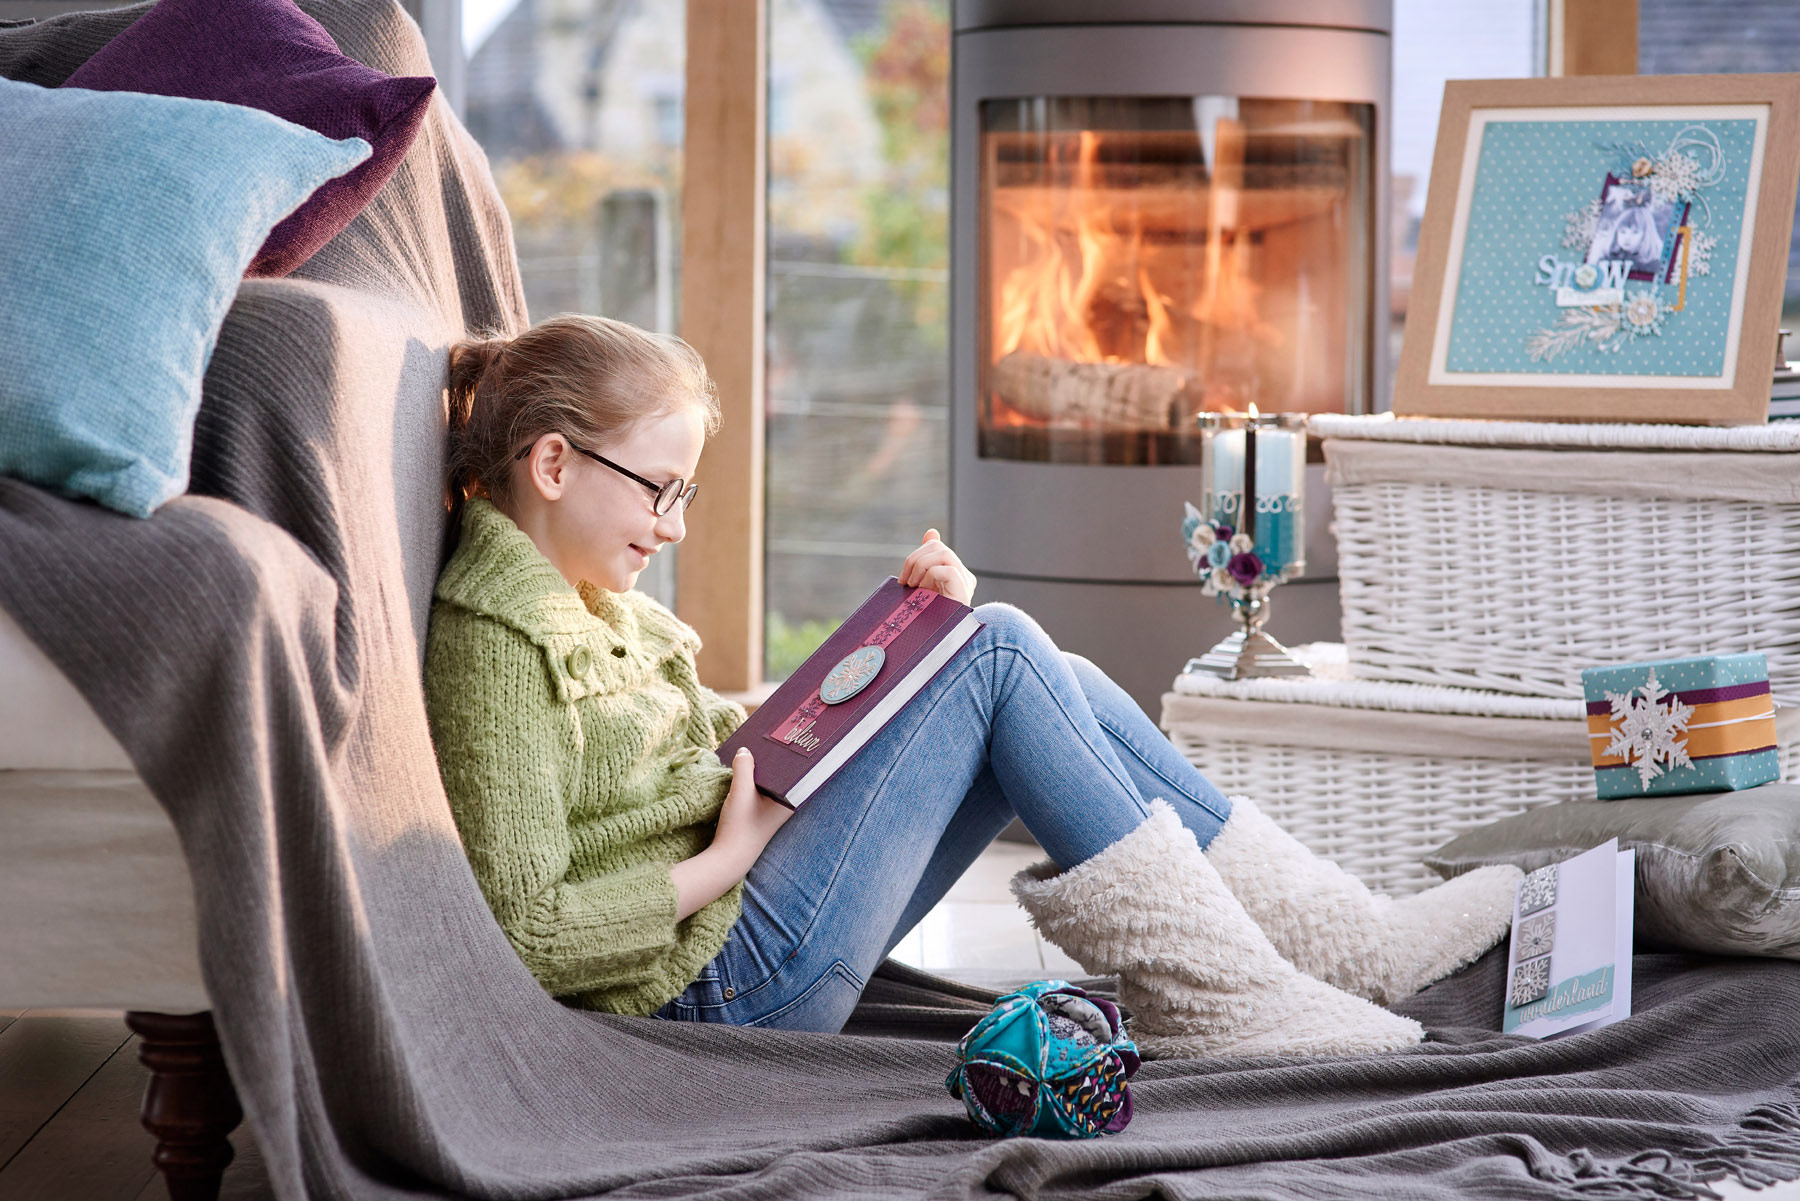 A young girl reading by the fire